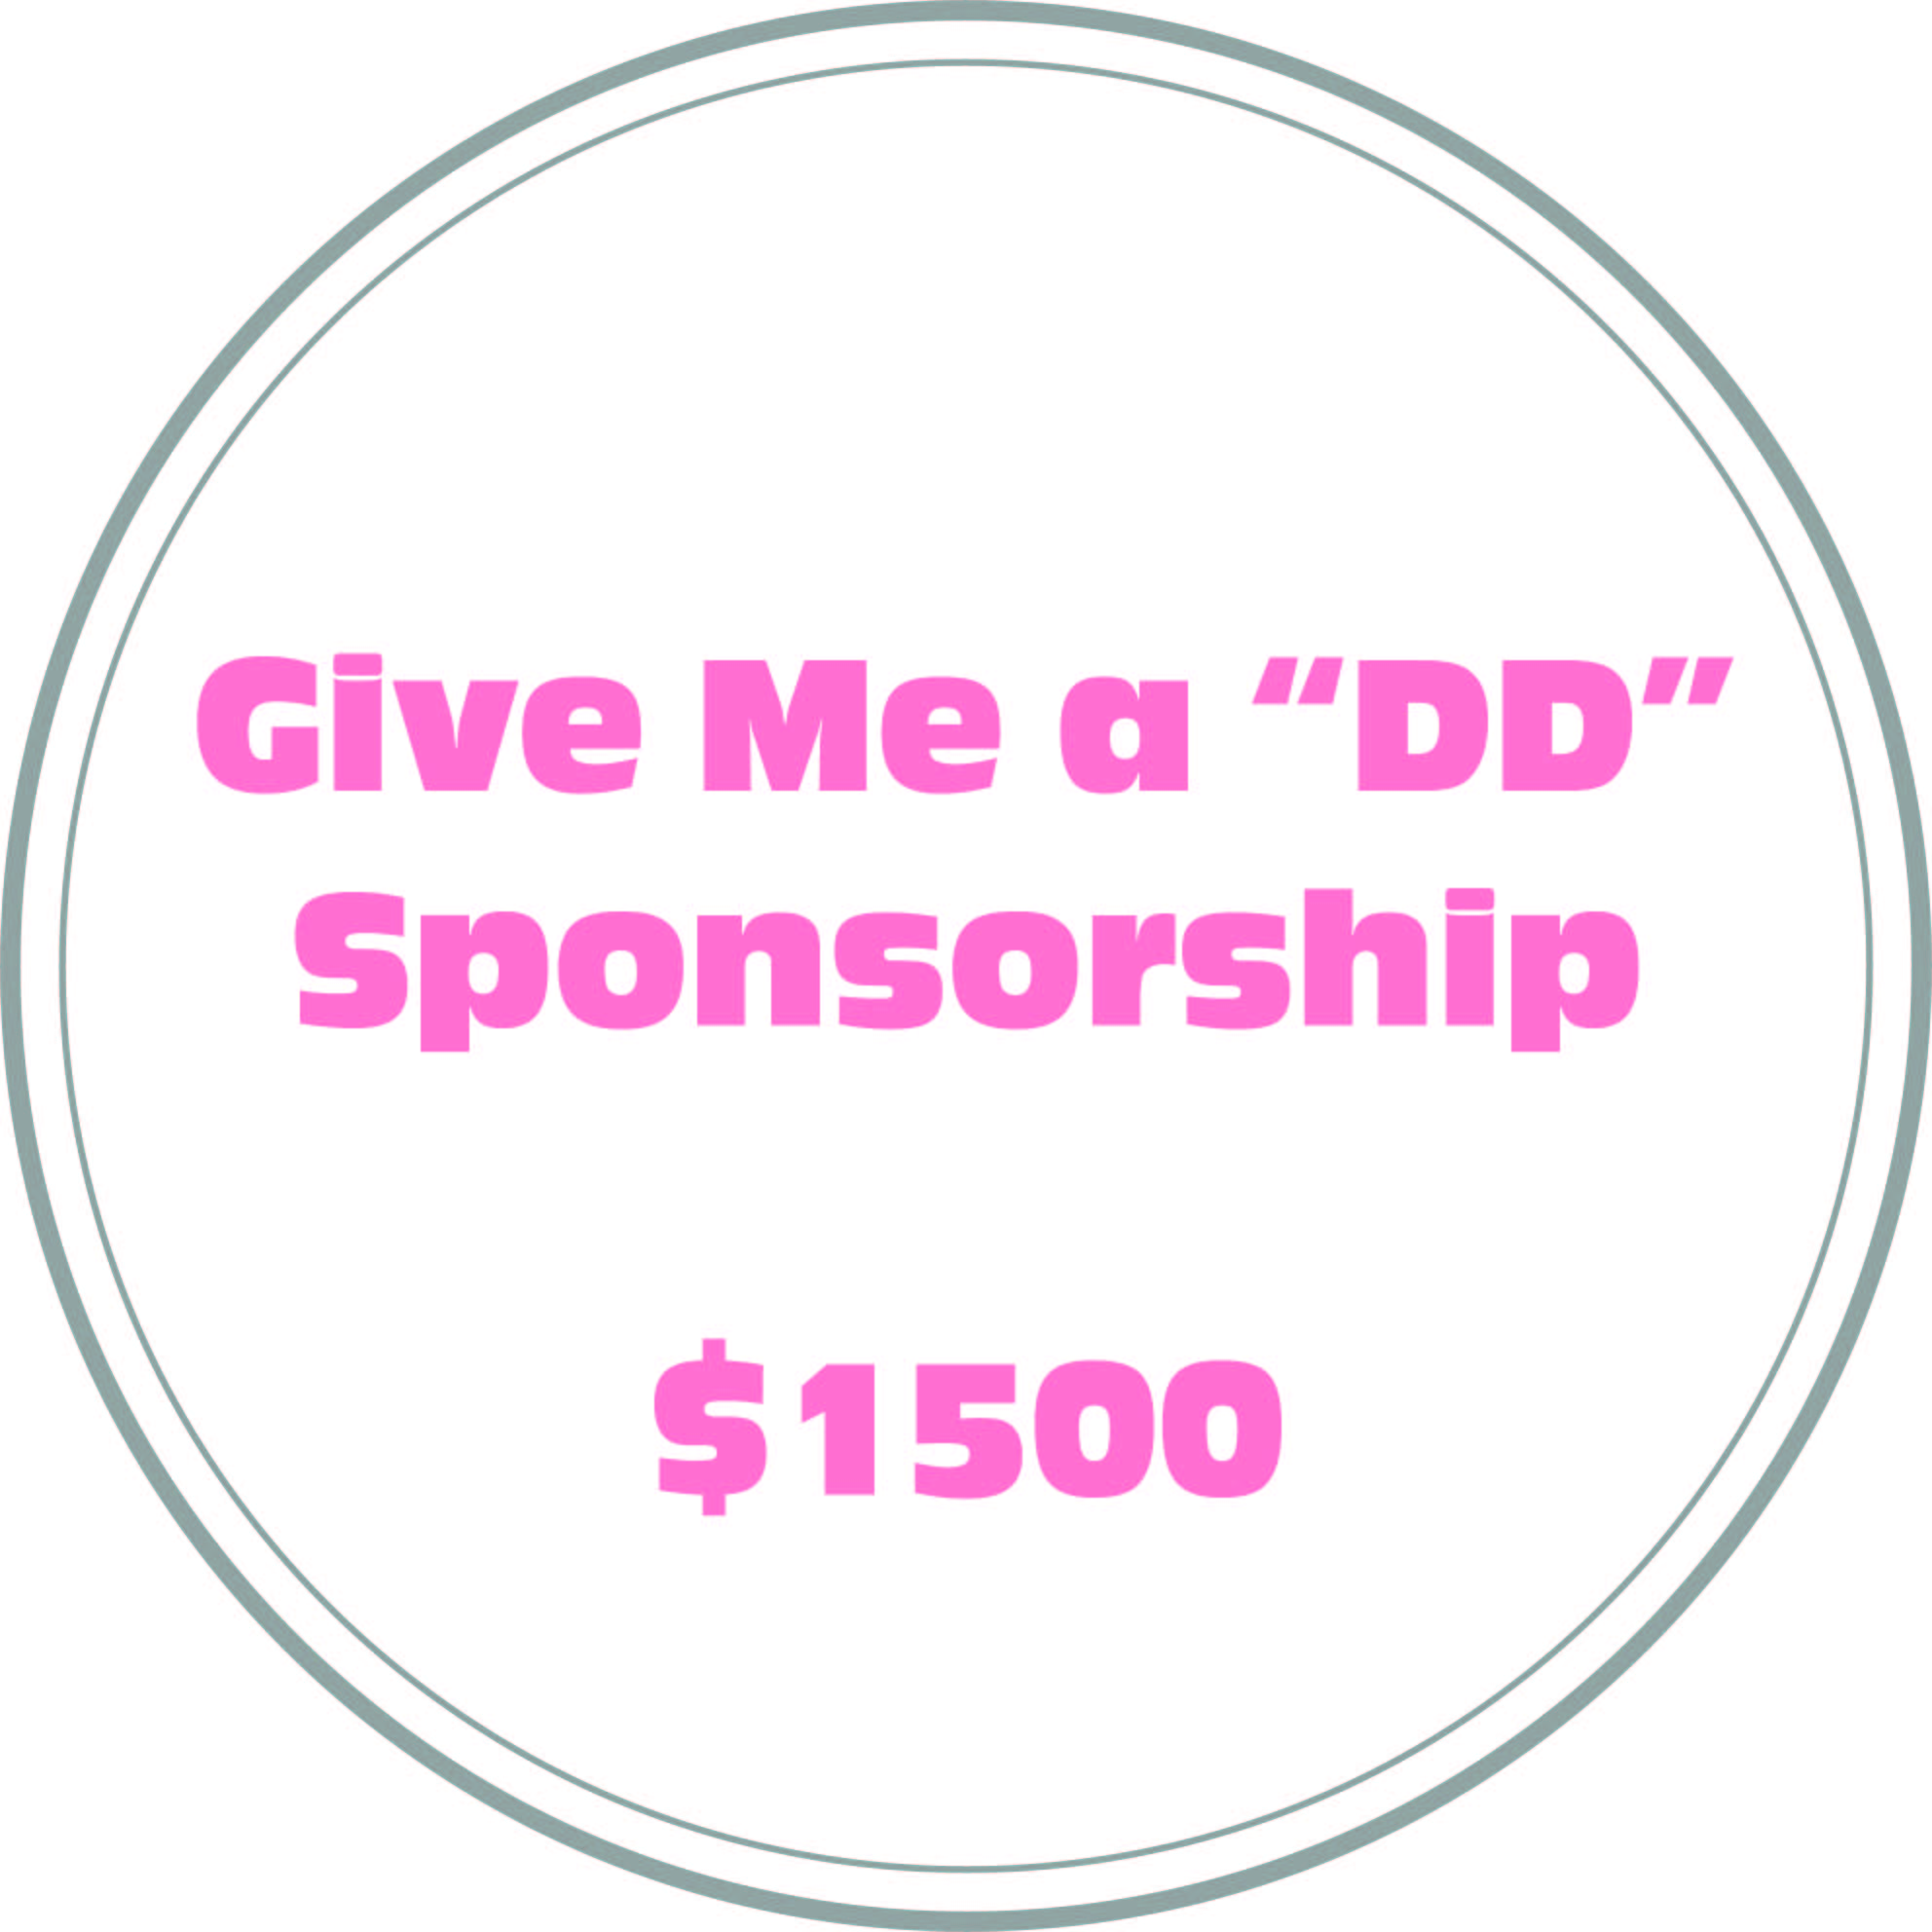 Sponsorship Includes:   Co-branding on all marketing and advertising materials    Sponsorship of one of the following with co-branding recognition  Kids' Zone  Schweitzer Gift Card  T-Shirts  Race Course  Brats Station    Registration and shirts for 8  VIP perks at race and Oktoberfest  Company logo on race shirts  Recognition in all event marketing including social media and event website  Space at the event to place a banner  Logo on event website